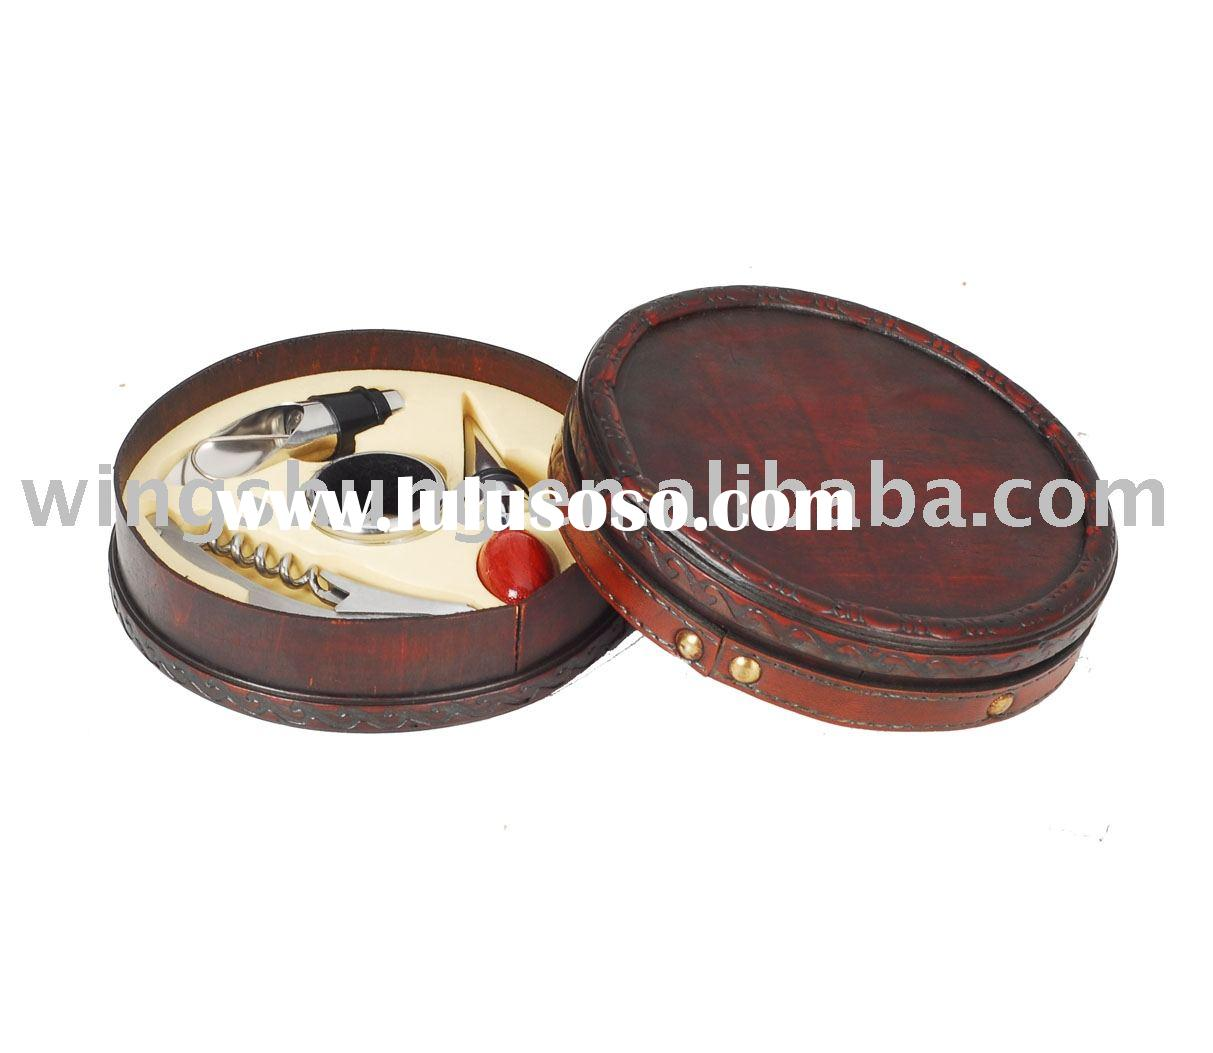 Wine accessories with antique wooden box